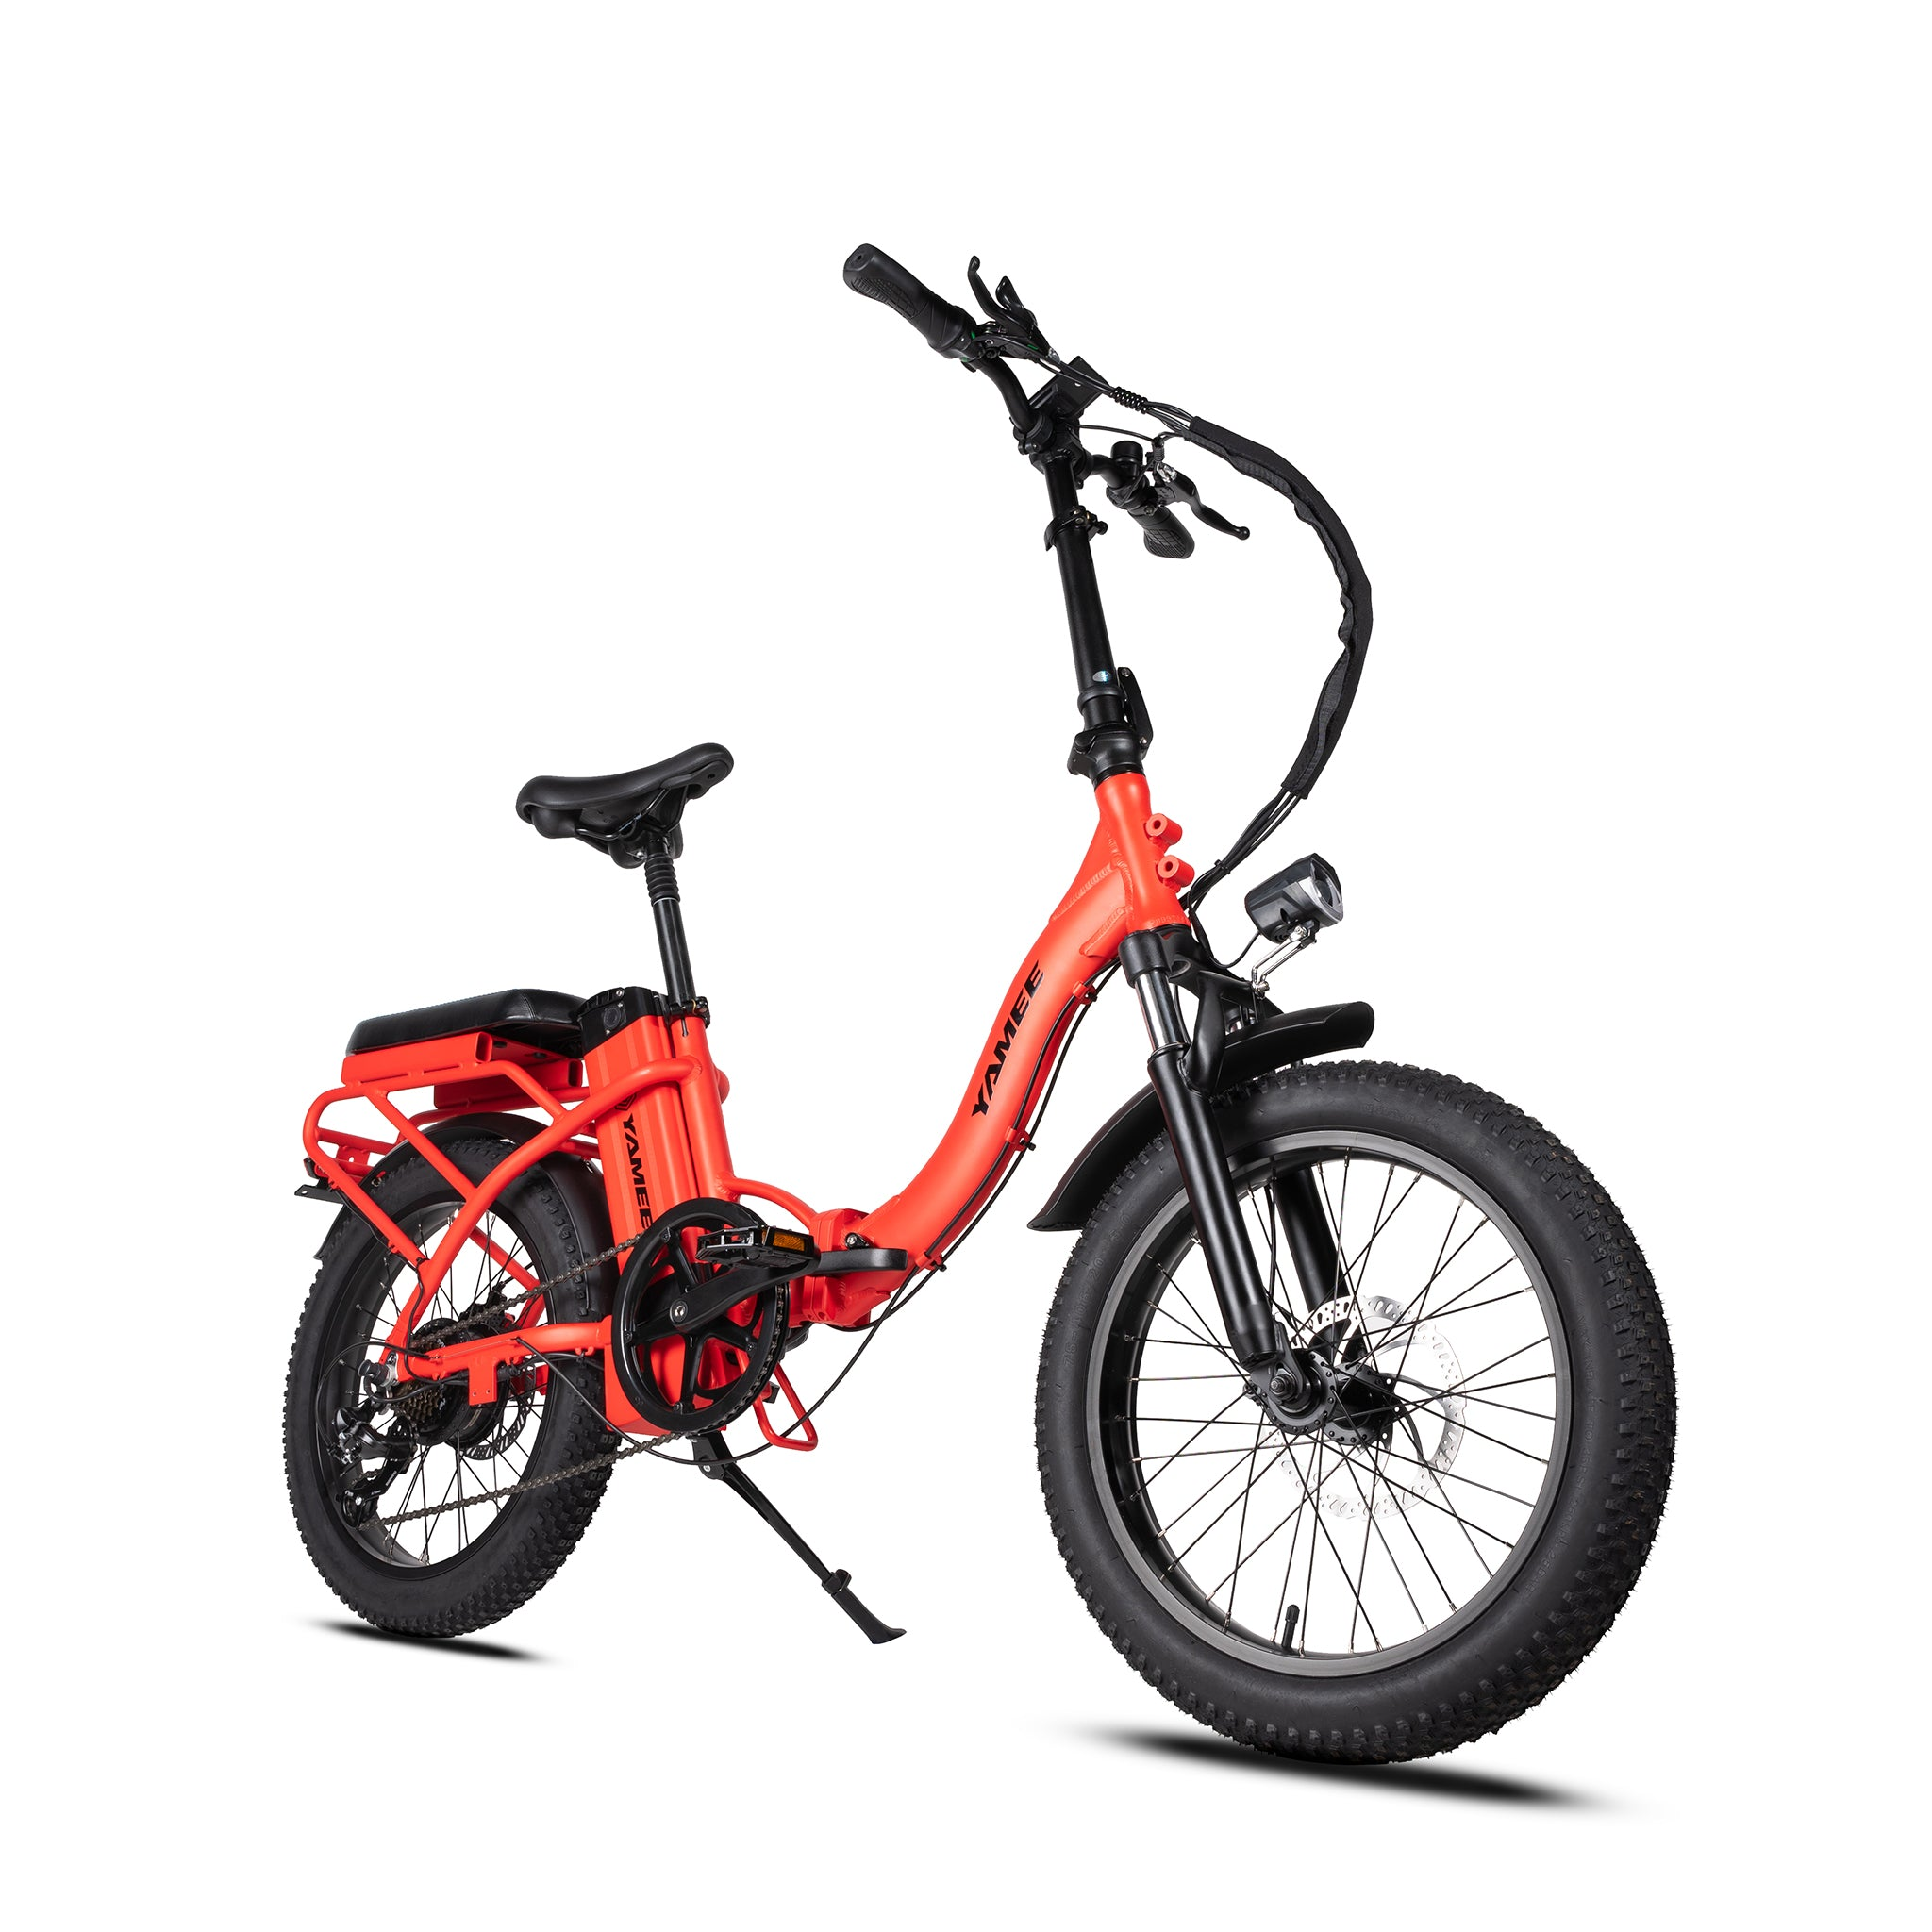 LF-500 - 500 Watts Tandem Fat Tire Folding Aluminum Electric Bike in 3 Colors (Easy Step Through)